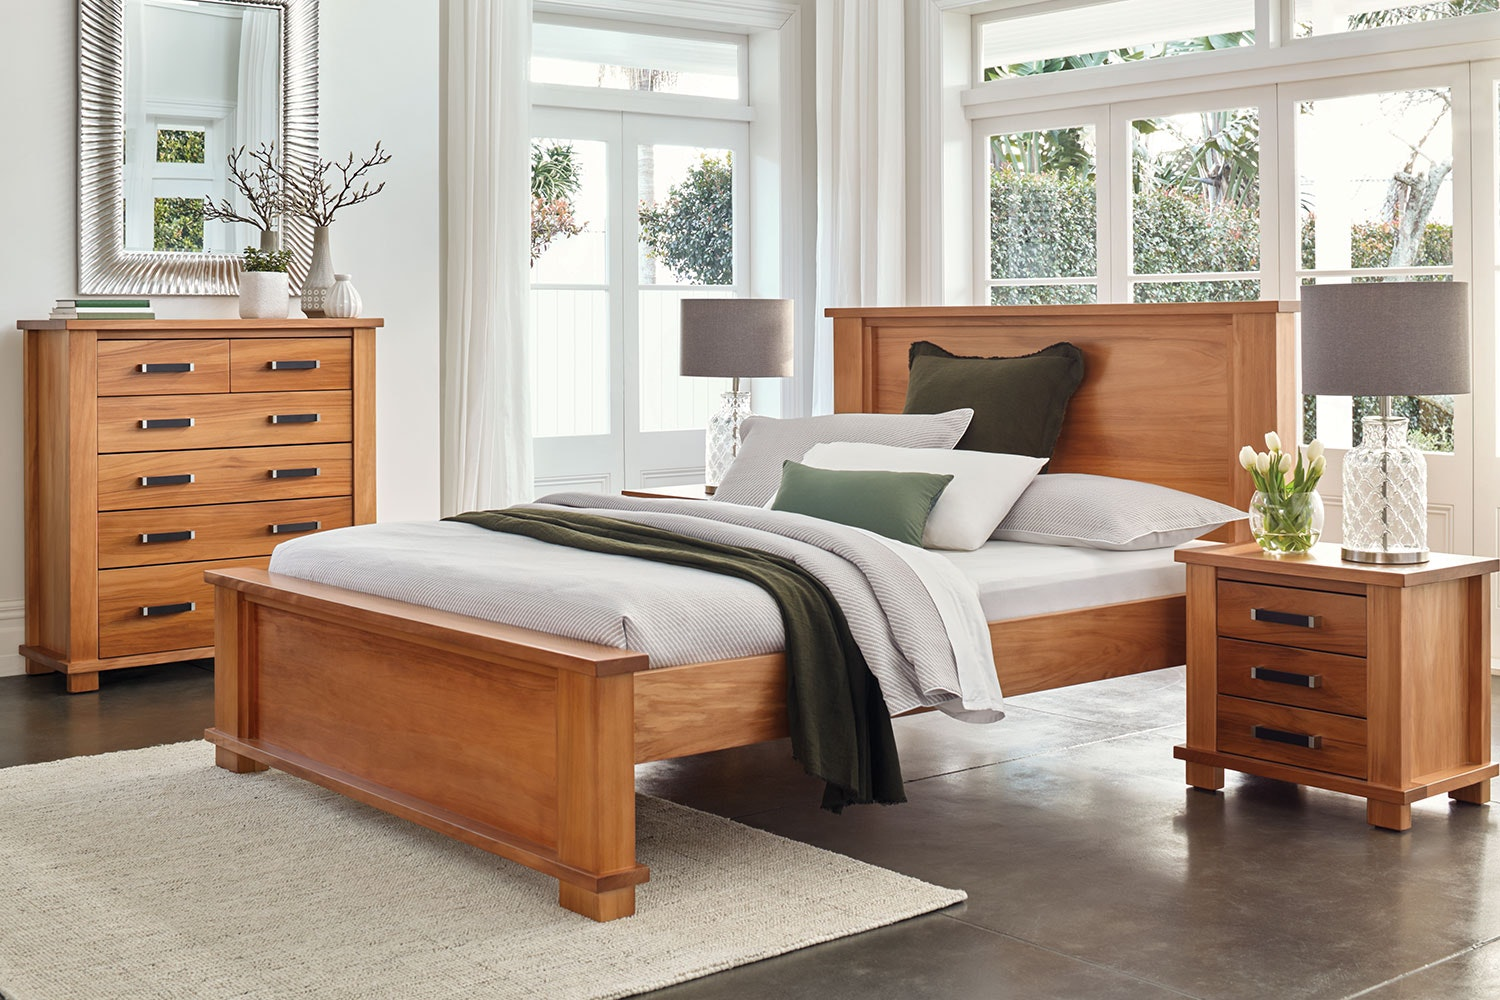 Huntsman Low Foot King Bed Frame by Ezirest Furniture